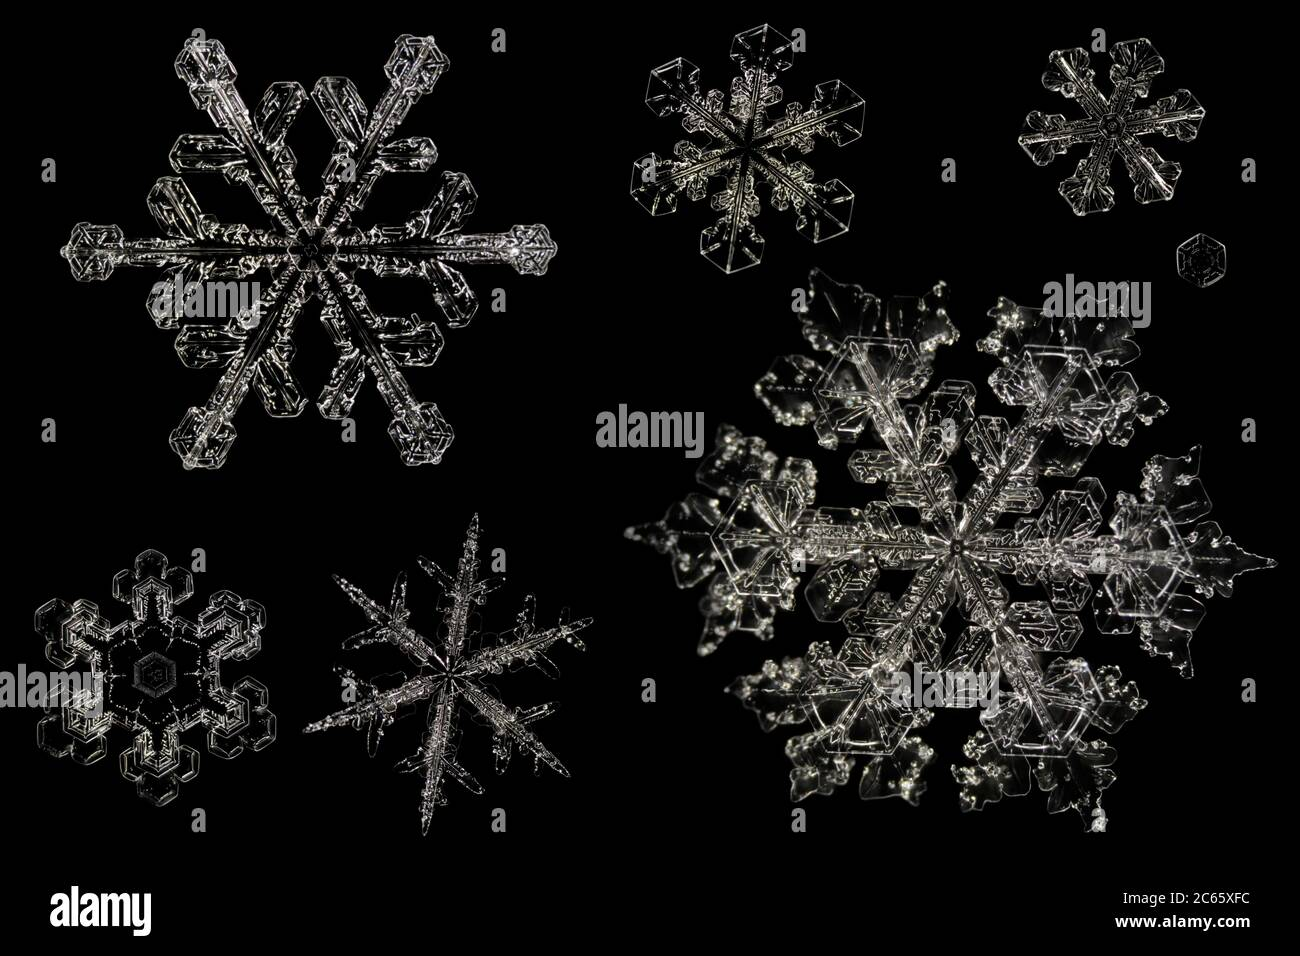 Snow Crystals, Snowflake magnified under microscope, Lillehammer, Norway Stock Photo